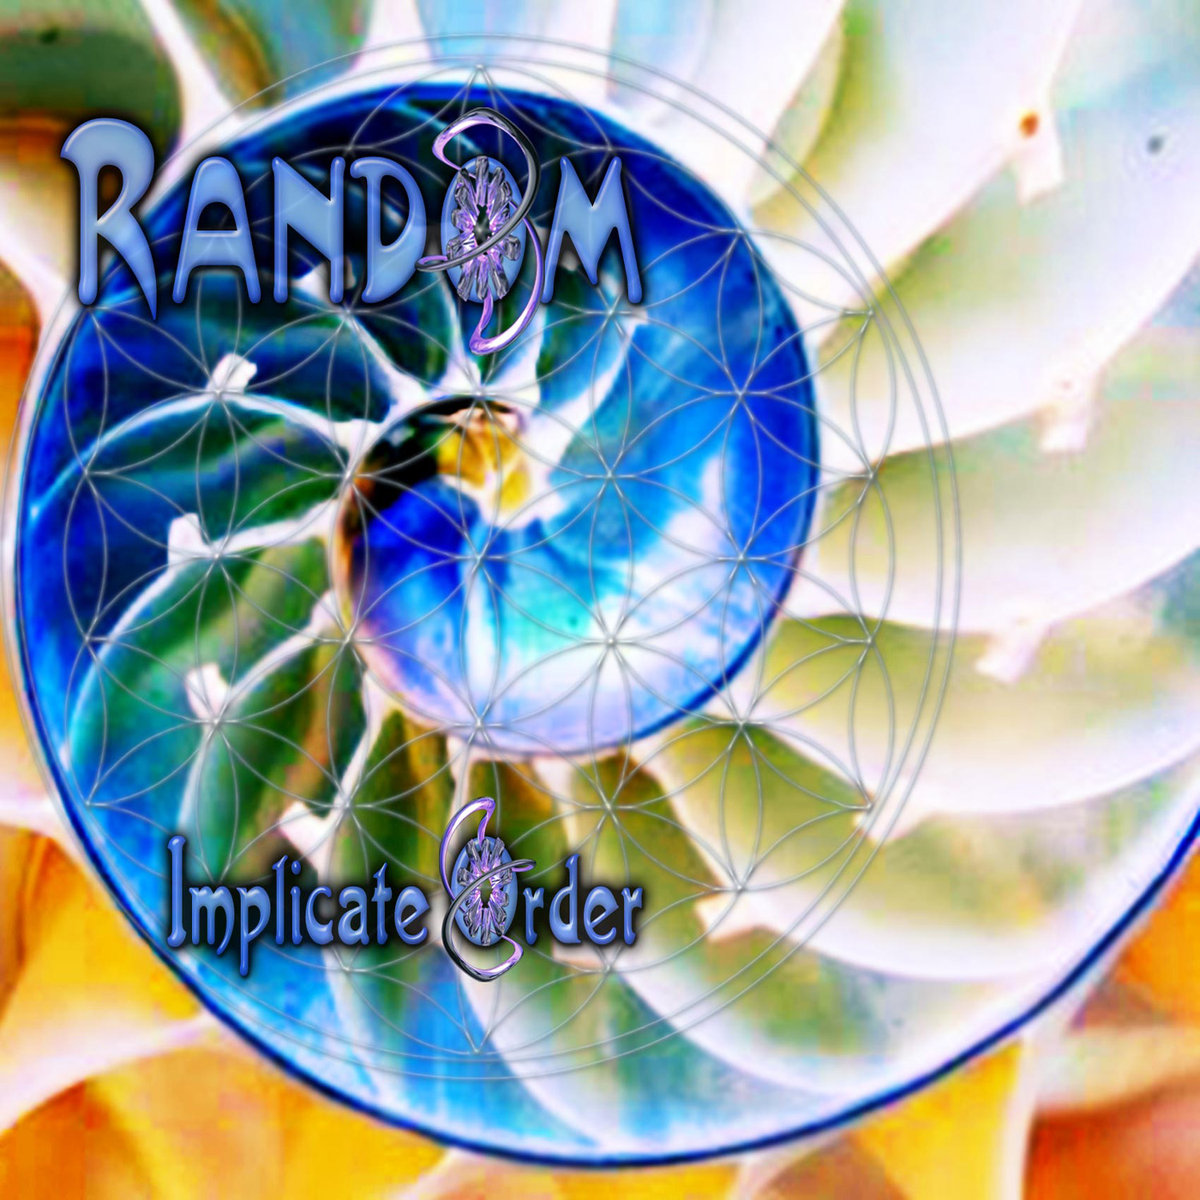 Random - The Implicate Order